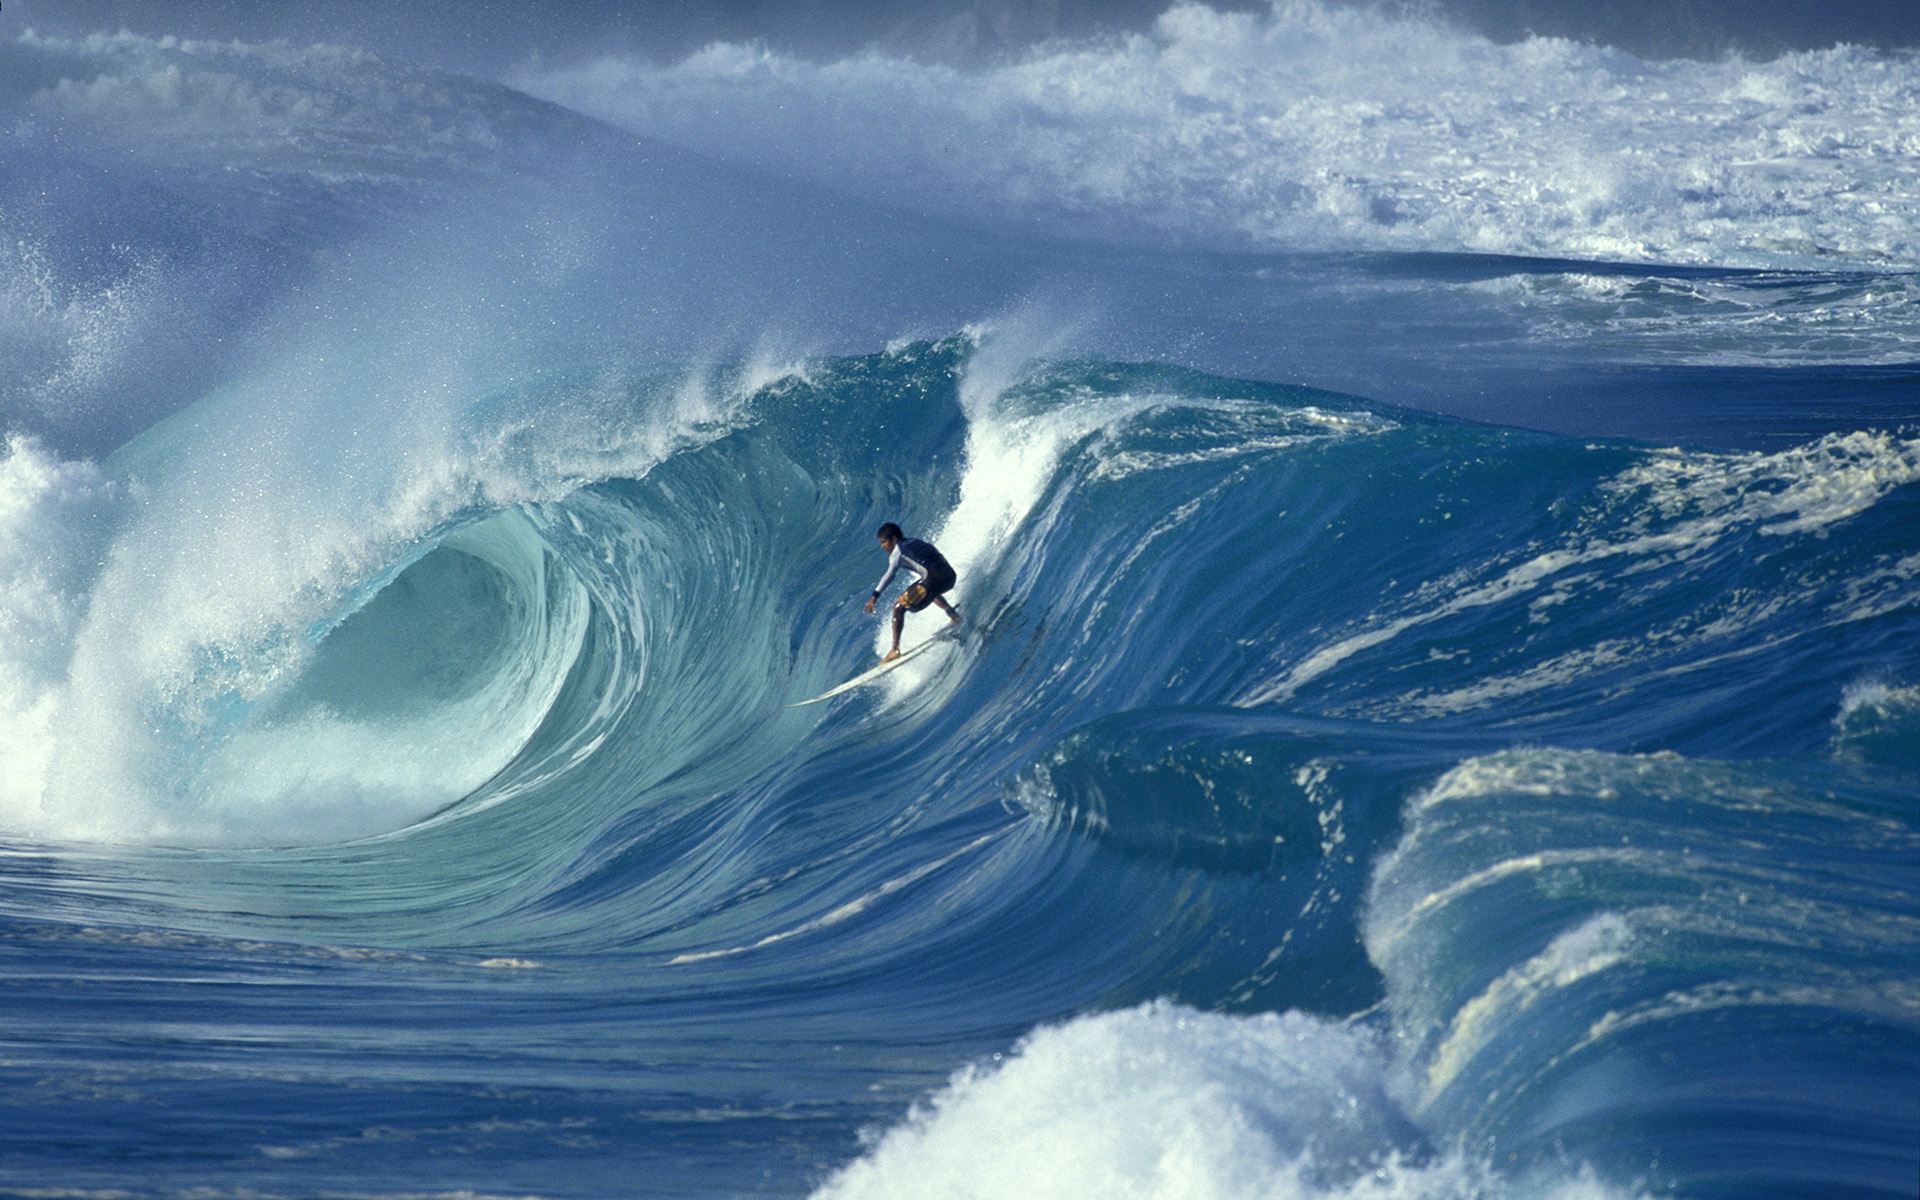 Wallpaper wave surfing big wave waimea shorebreak hawaii desktop 1920x1200